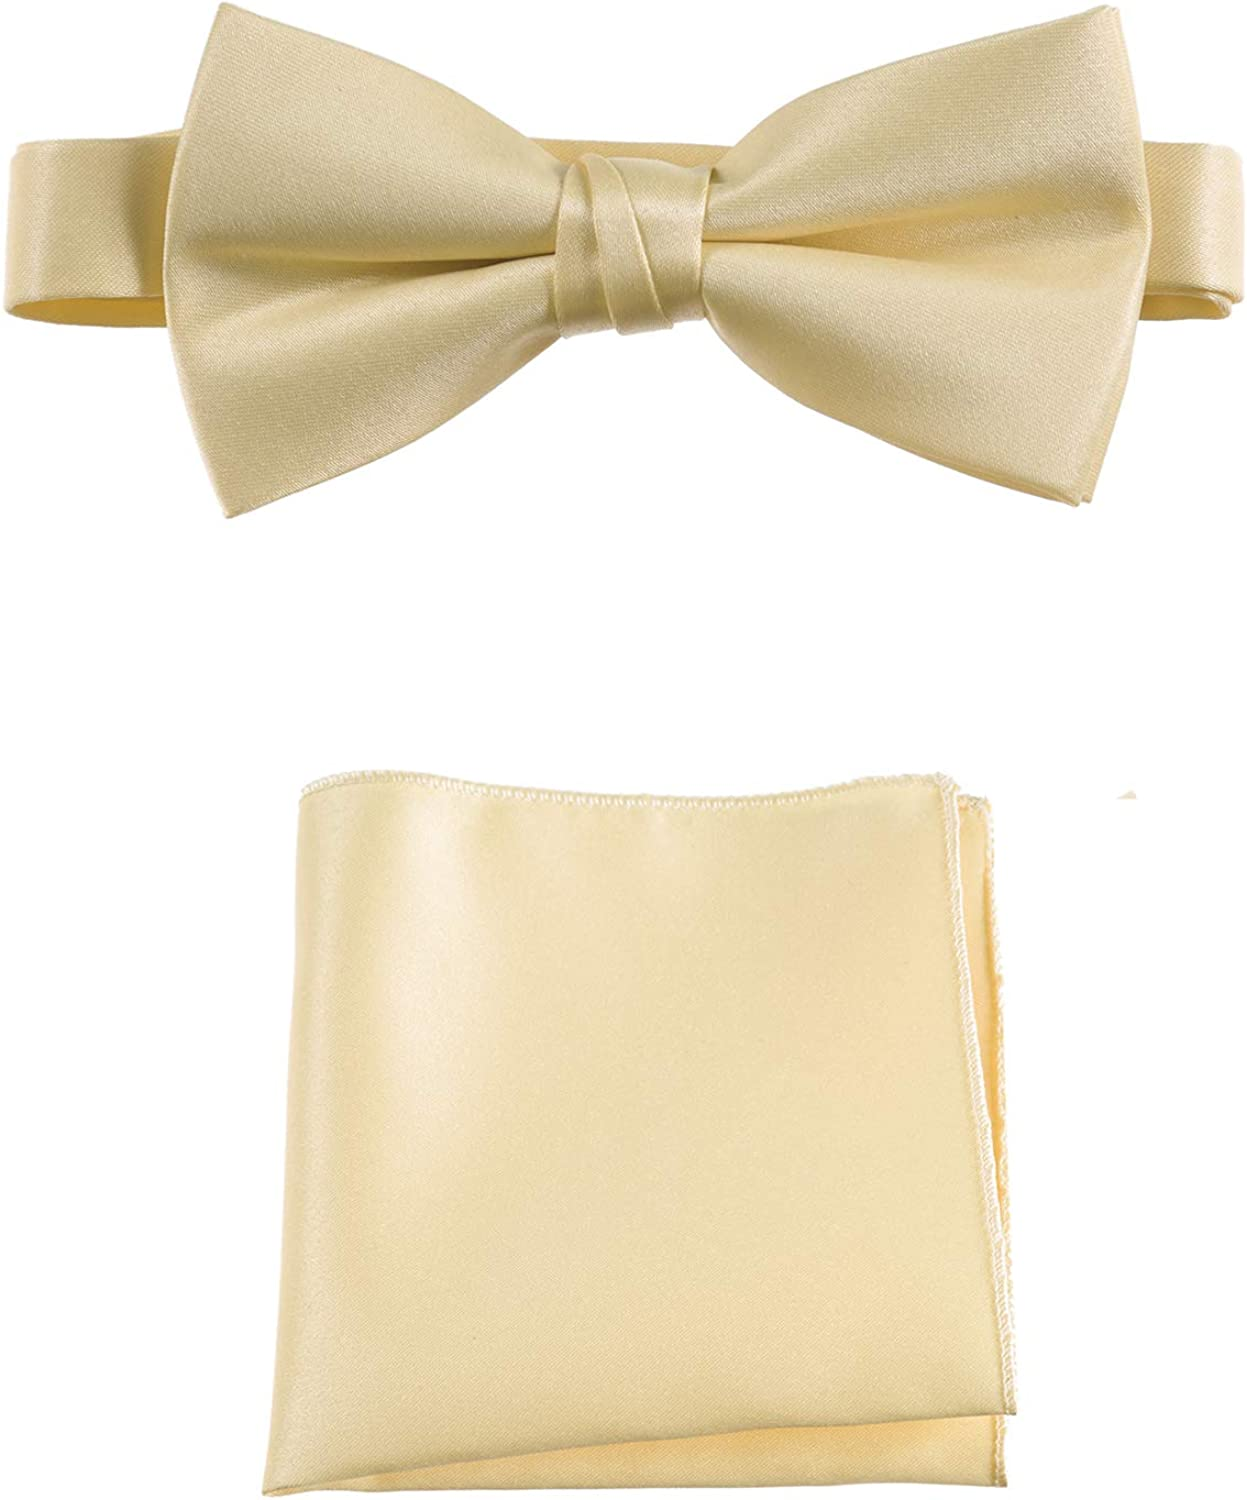 Tuxgear Mens and Kids Adjustable Bow Tie and Pocket Squares in Assorted Colors